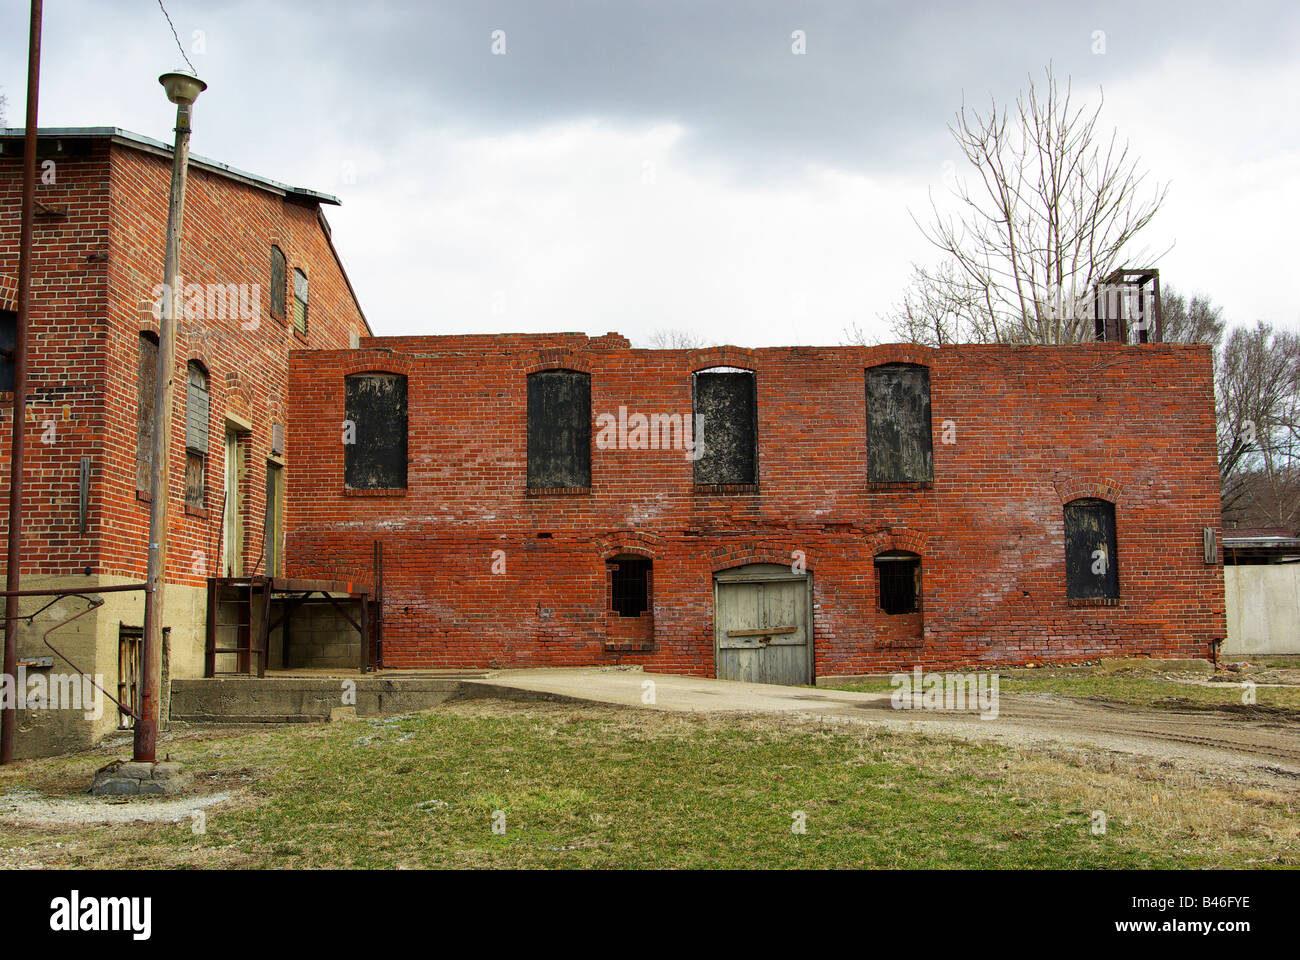 An Old Abandoned Factory Building Made Of Red Brick